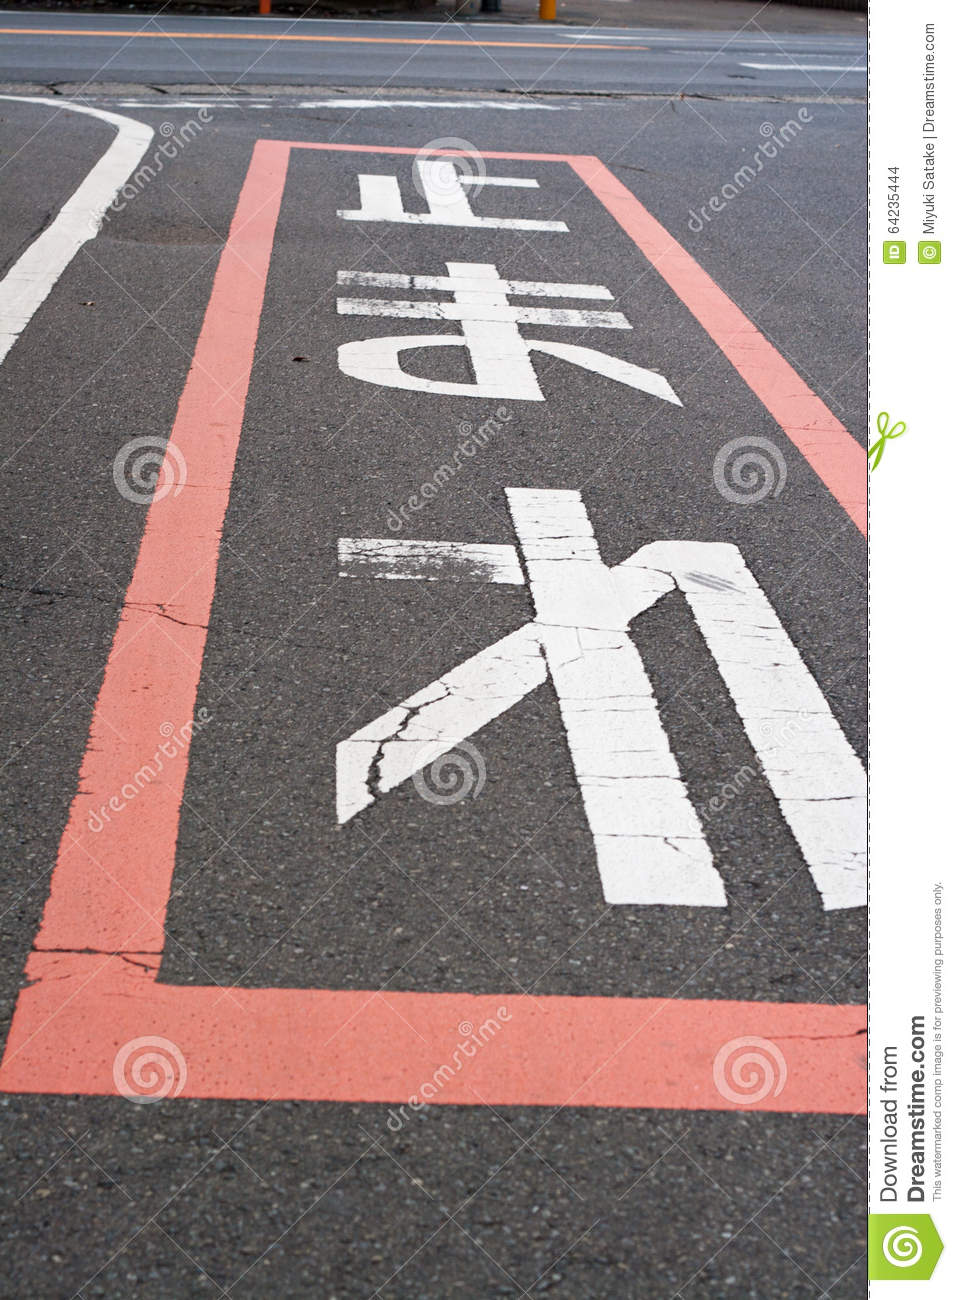 Japanese Stop Sign On The Road Stock Photo Image Of Sign Road 64235444